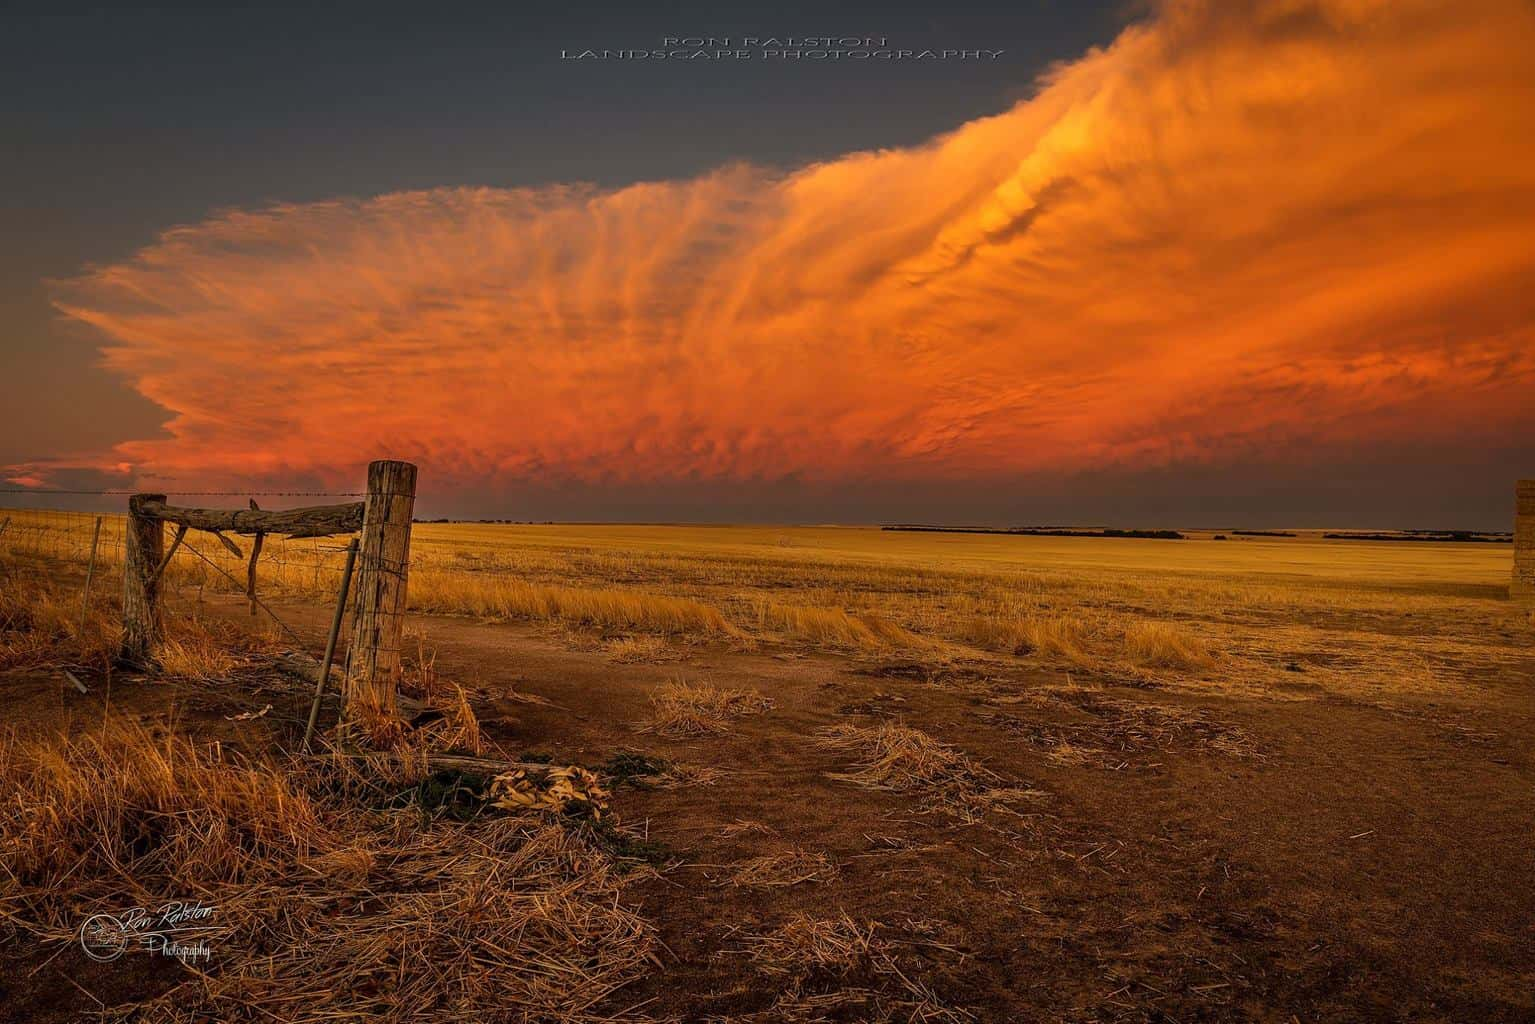 Sun setting in the Wheat belt of Western Australia on the most amazing cloud I have seen